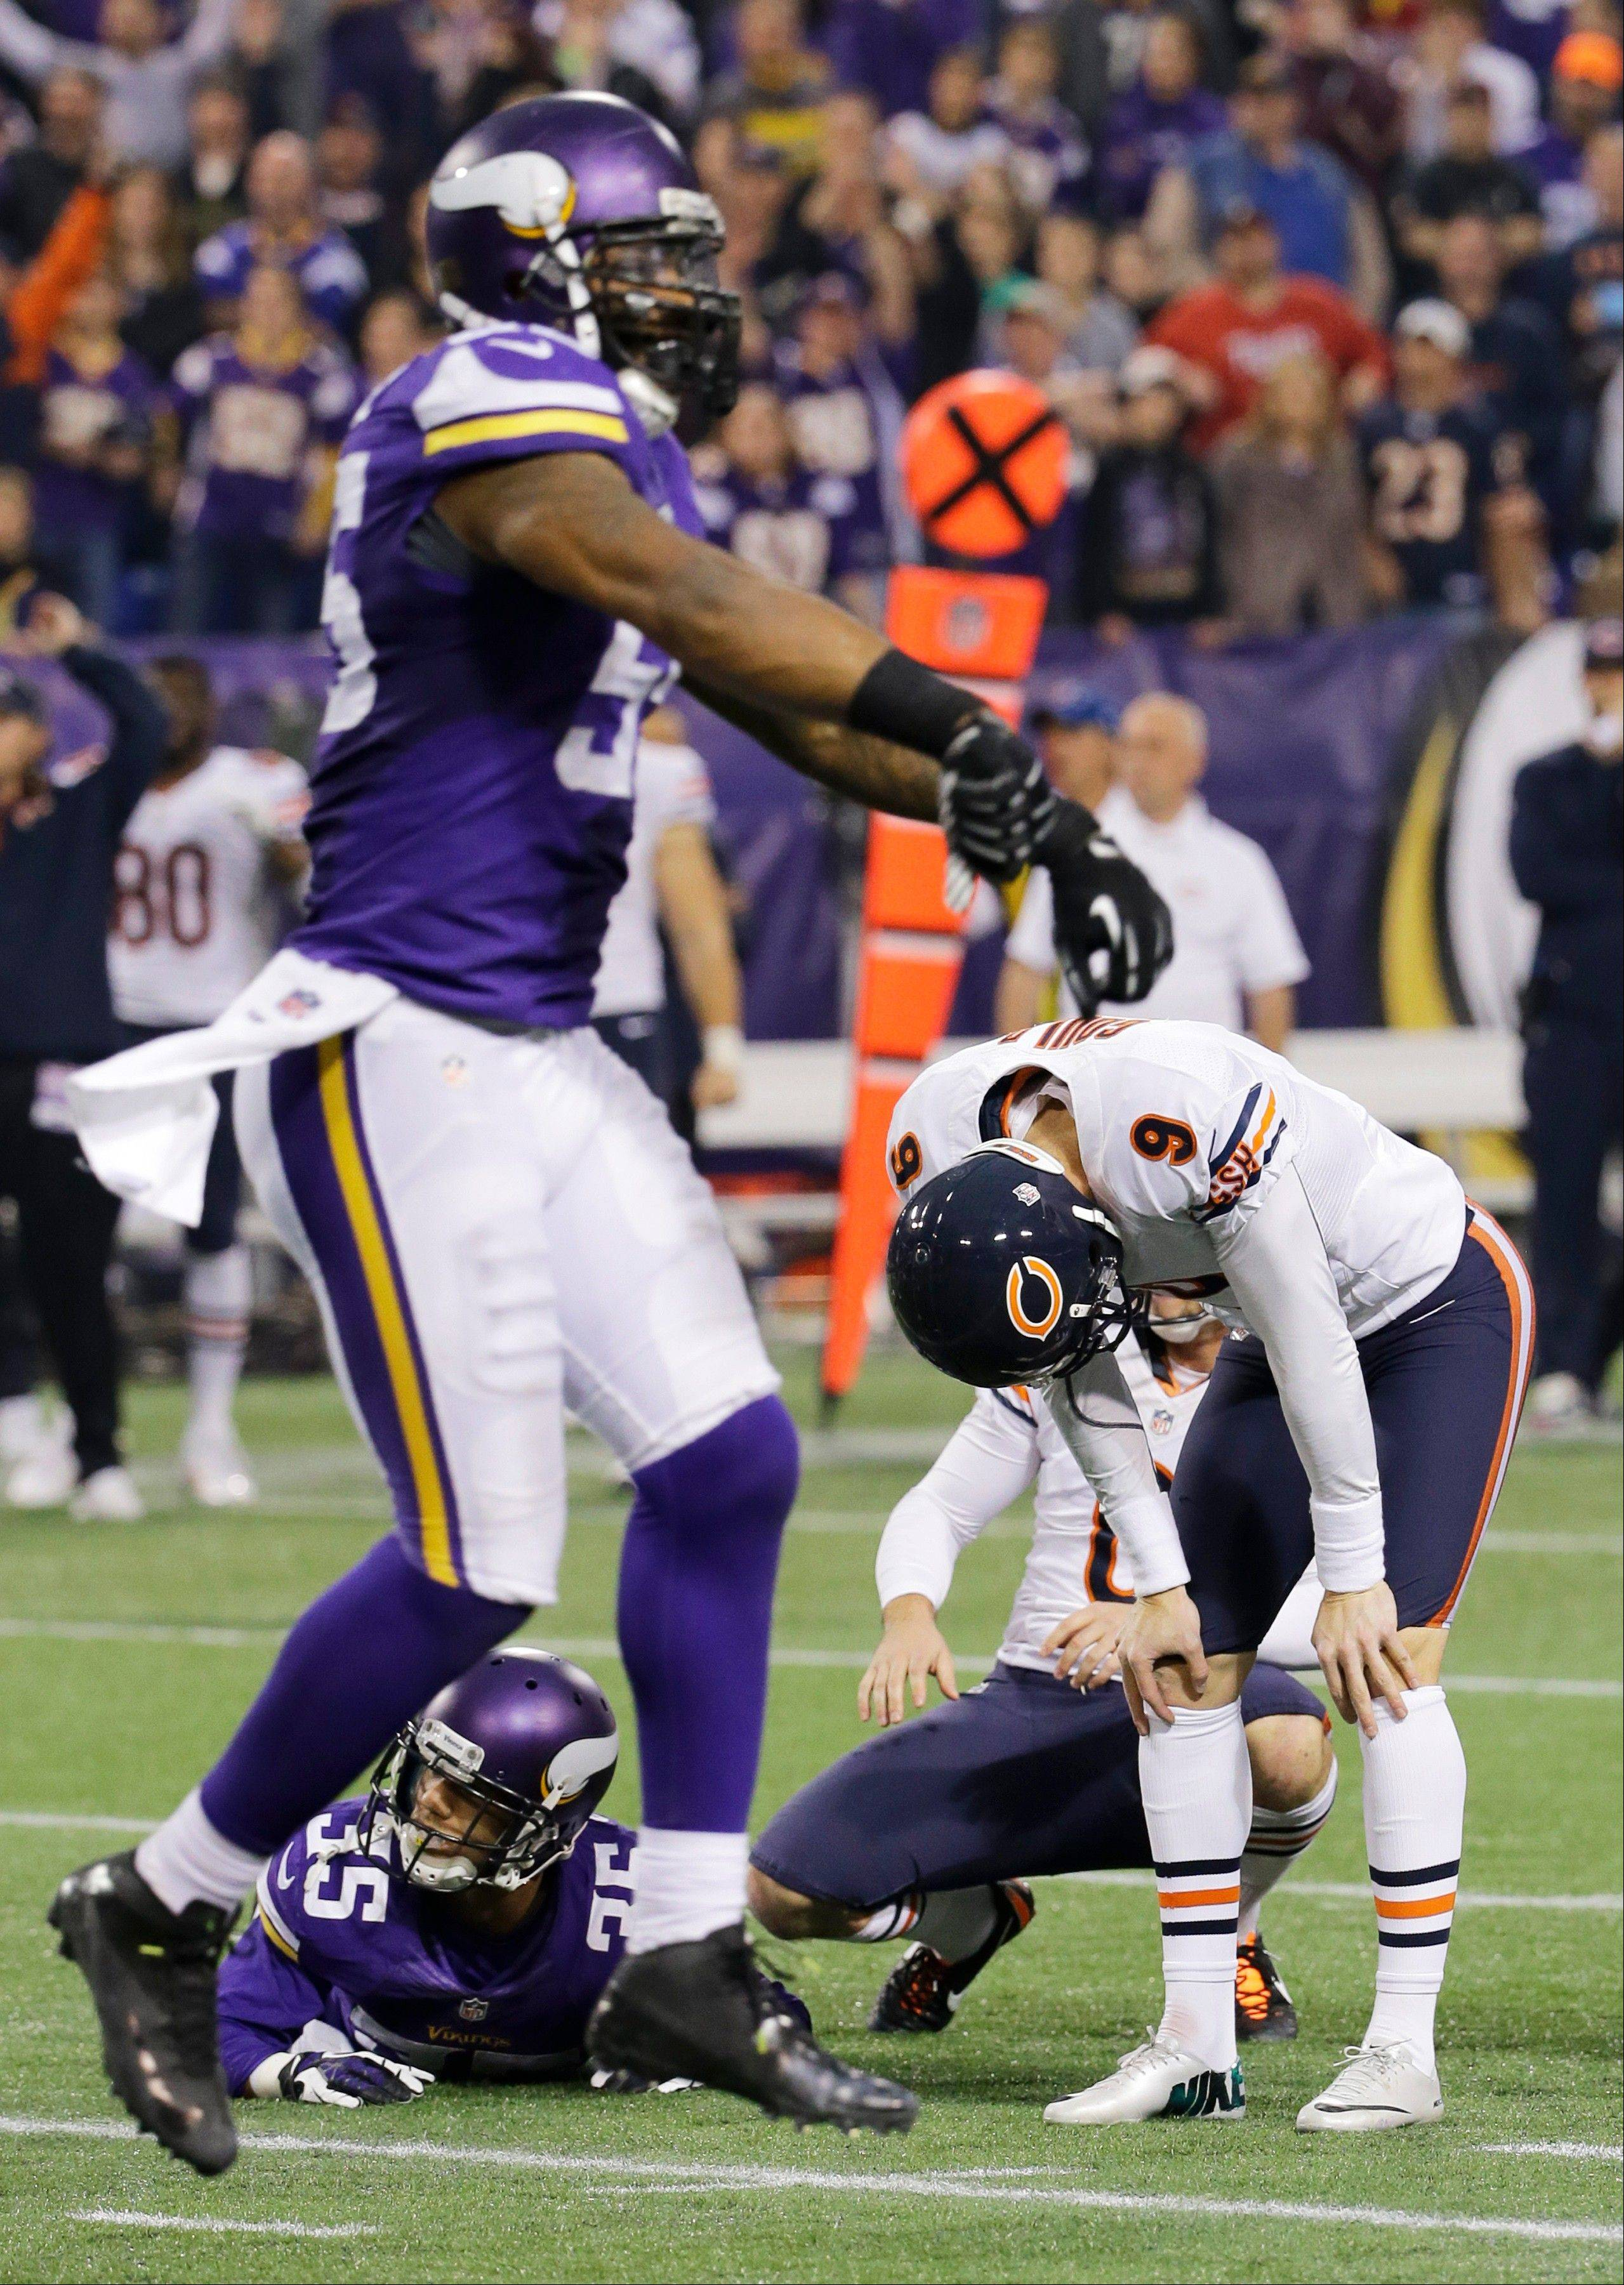 Chicago Bears kicker Robbie Gould (9) reacts in front of Minnesota Vikings defenders Marcus Sherels (35) and Marvin Mitchell after missing a field goal during overtime of an NFL football game. The Vikings won 23-20.